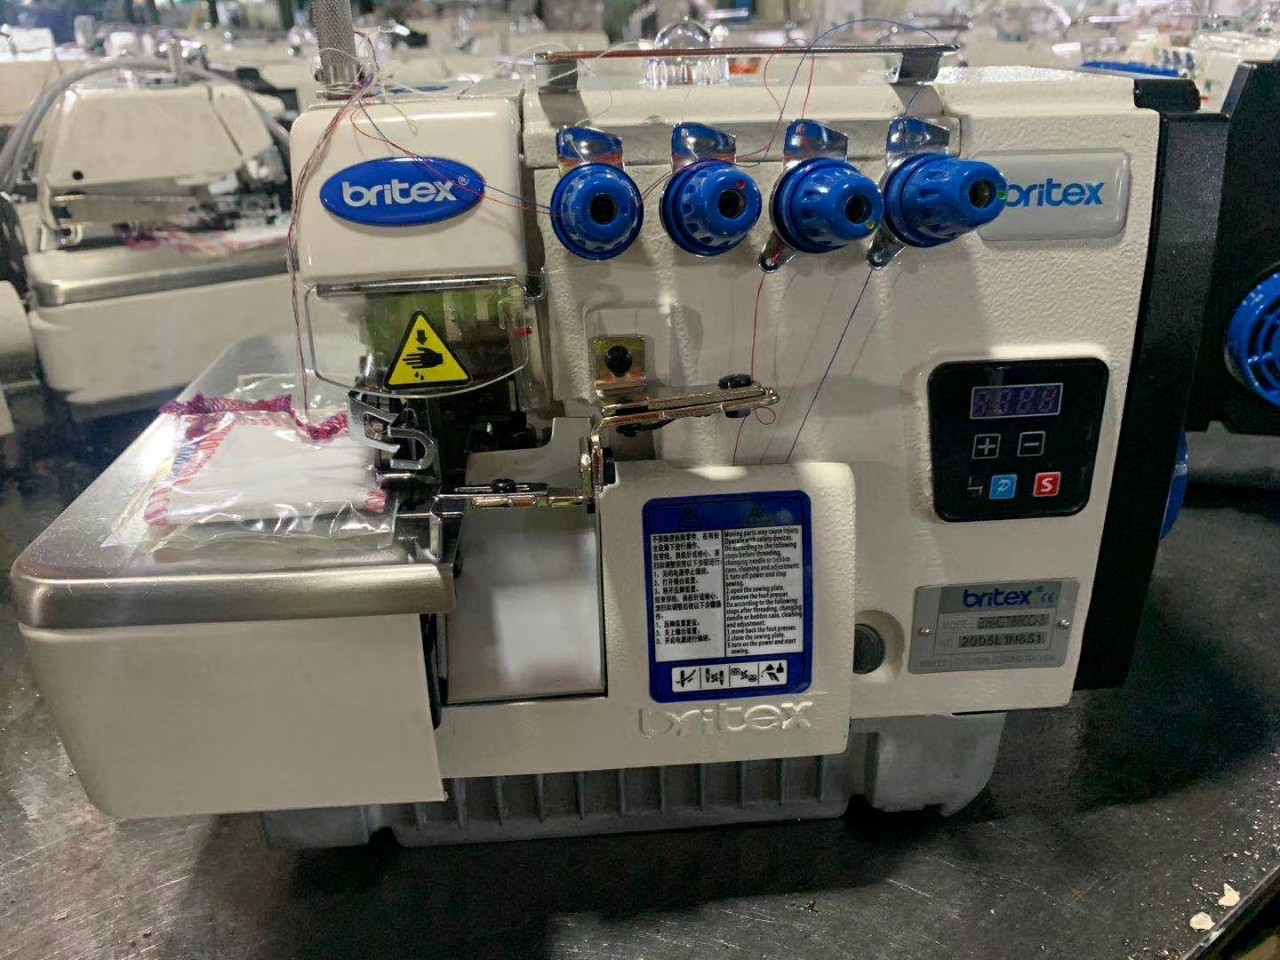 Electronic sewing machine Britex Overlock Stick - 700-4D - copy